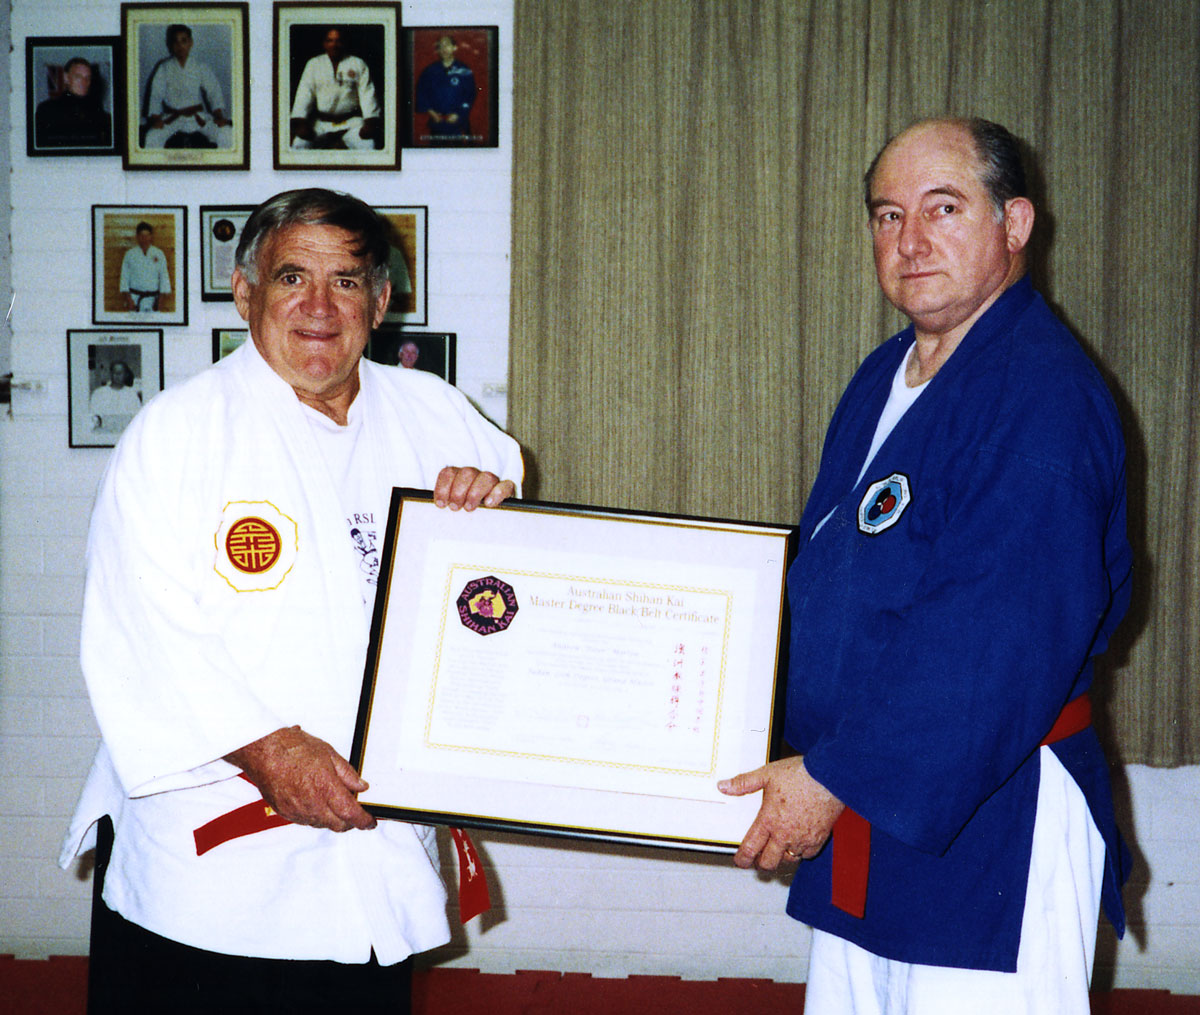 Kancho Bradshaw presents Hanshi Peter Morton with his 10th Dan